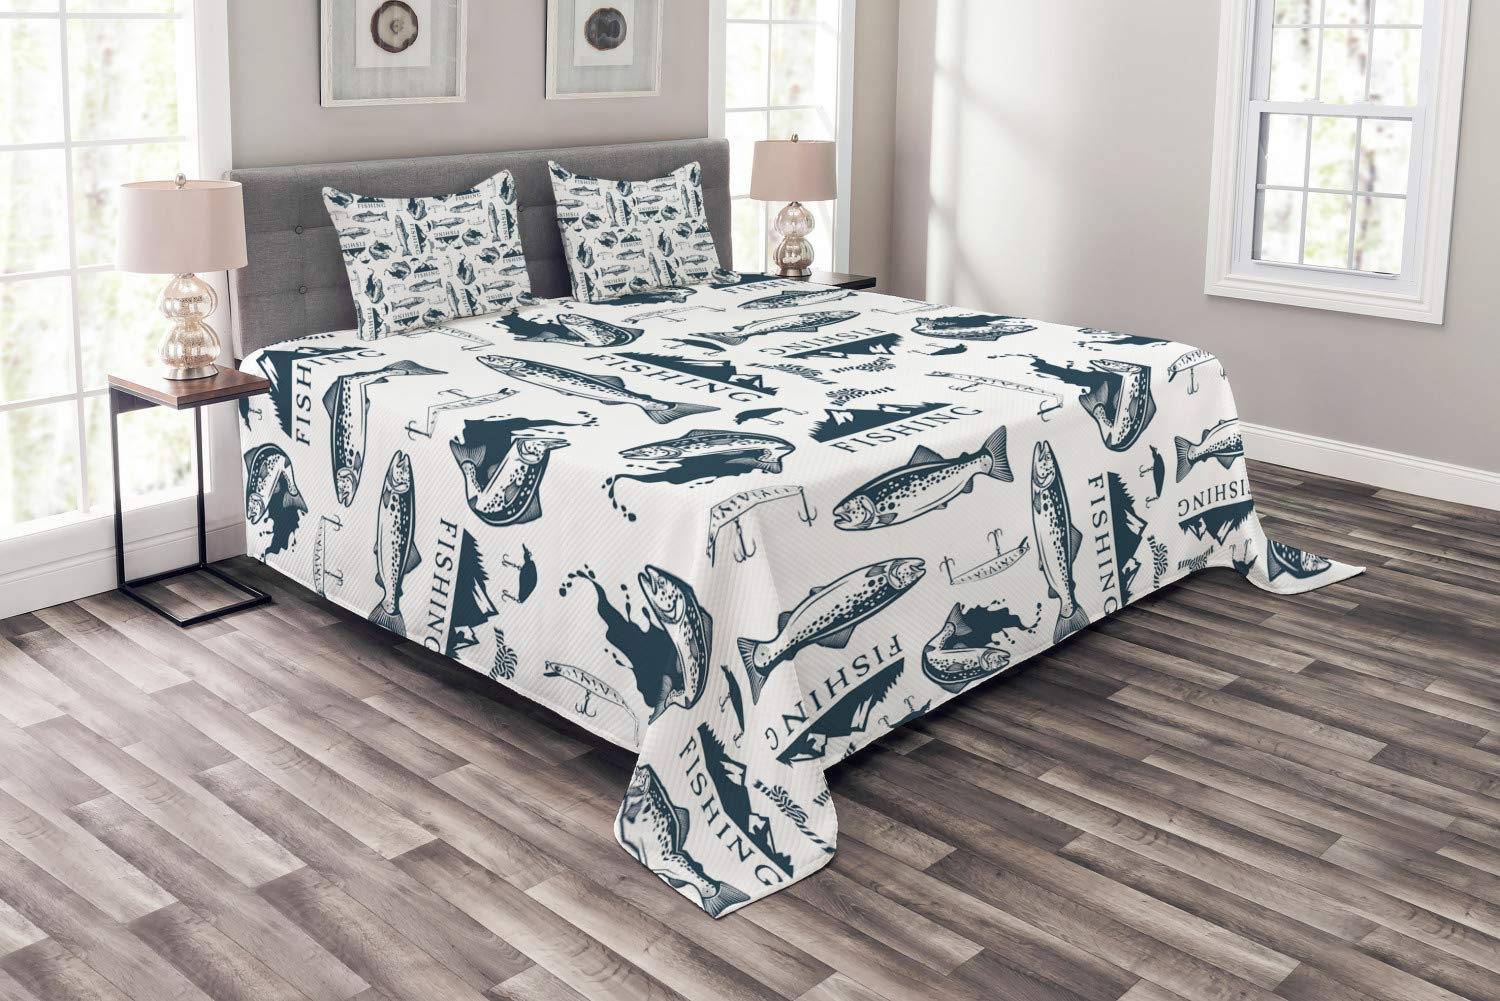 Lunarable Trout Bedspread, Trout Emblems Pattern Retro Style Marine Ropes Fishing Lures Mountains, Decorative Quilted 3 Piece Coverlet Set with 2 Pillow Shams, King Size, Dark Blue Grey and White